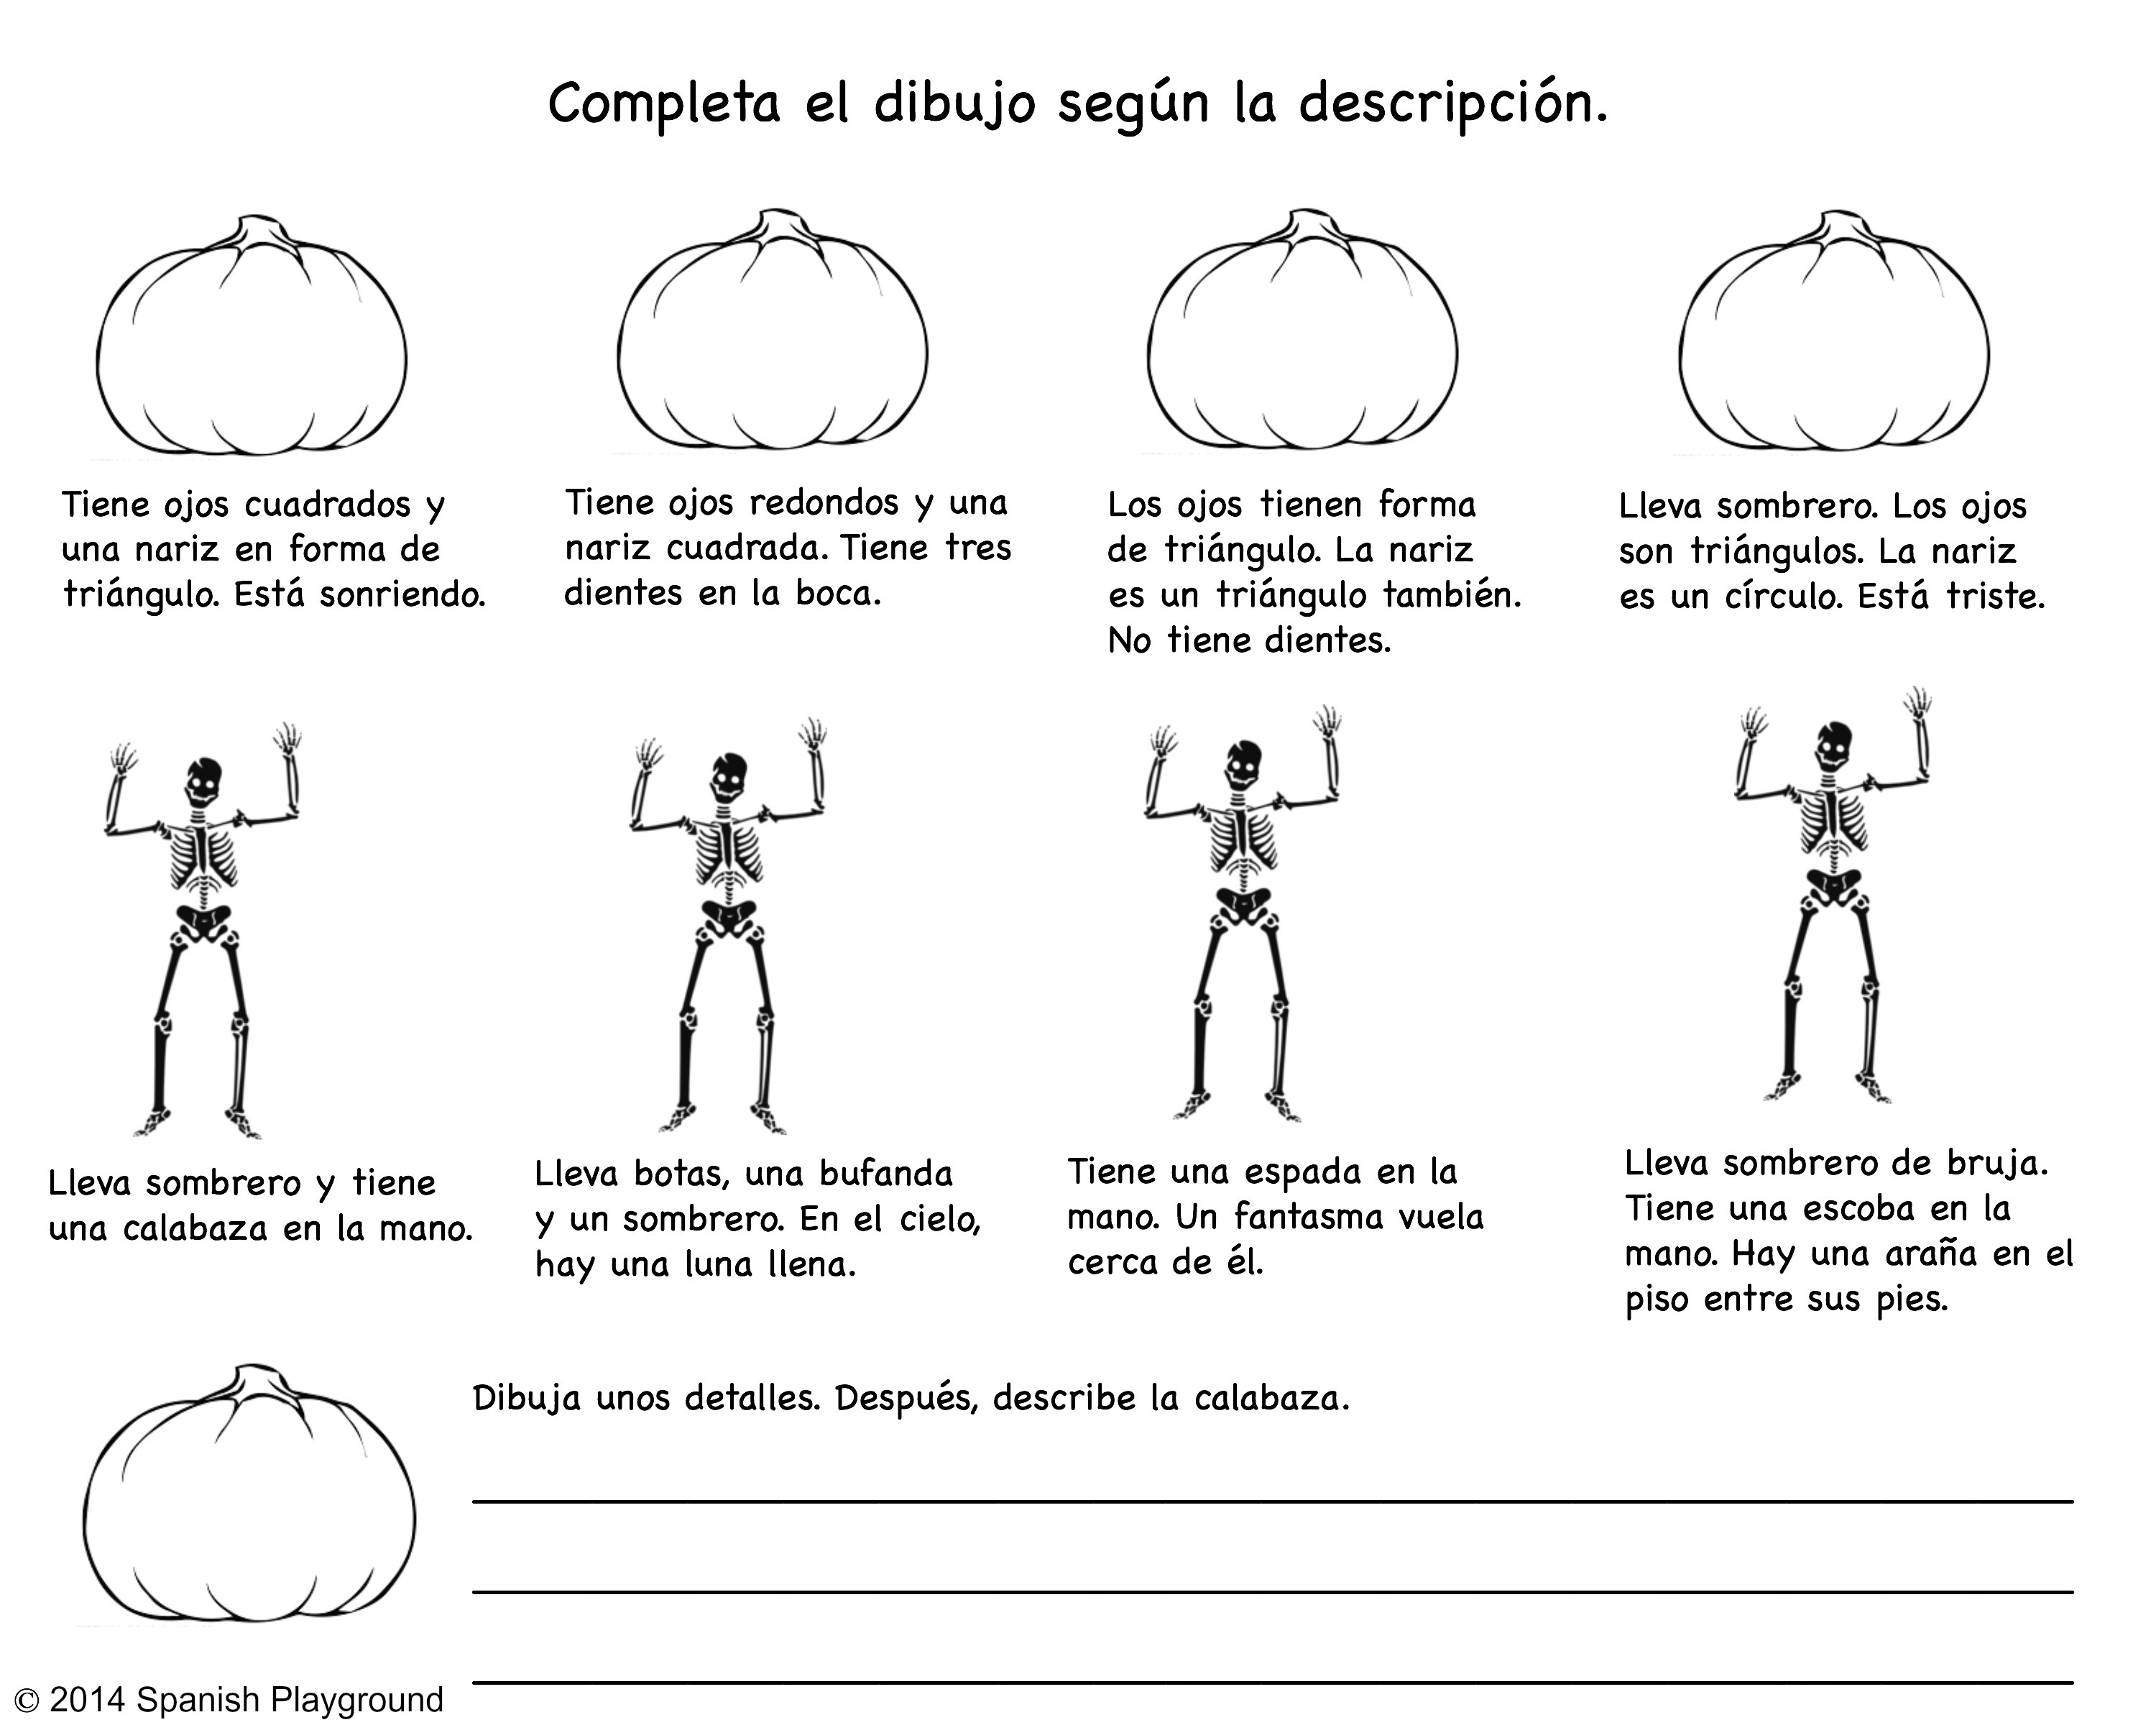 Spanish Halloween Read And Draw Printable Spanish Playground